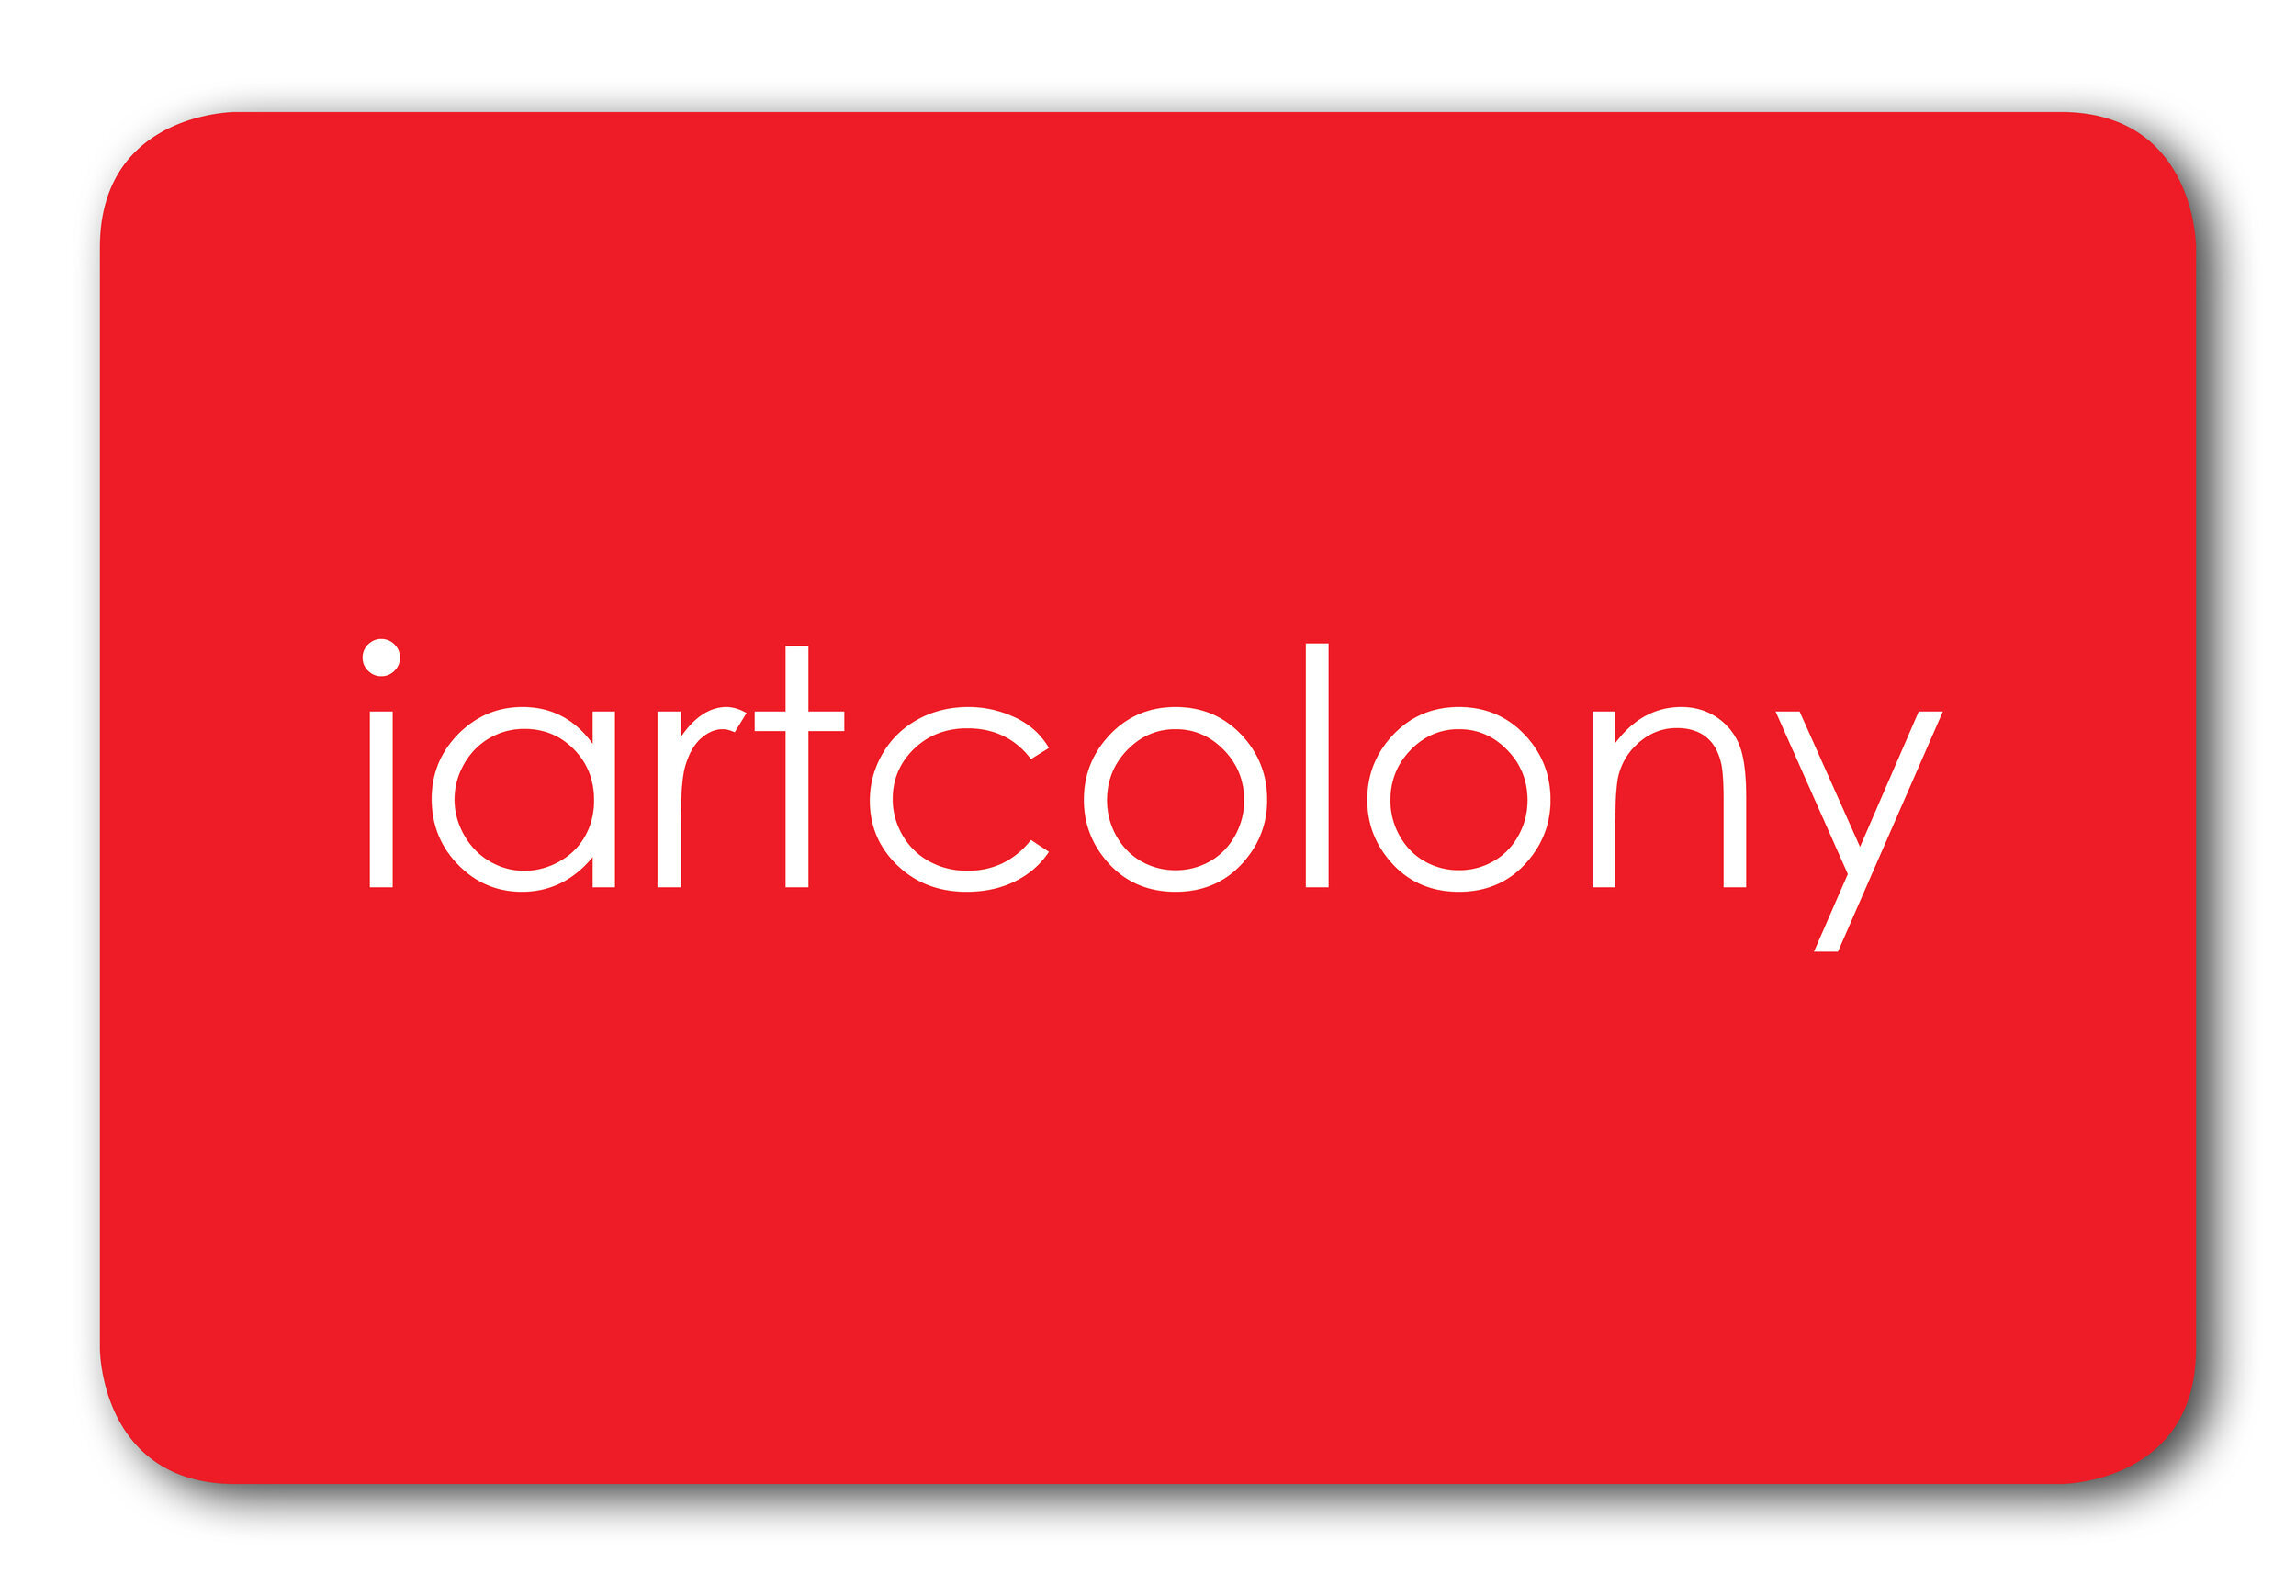 iartcolony+-+RED+ROUNDED.jpg